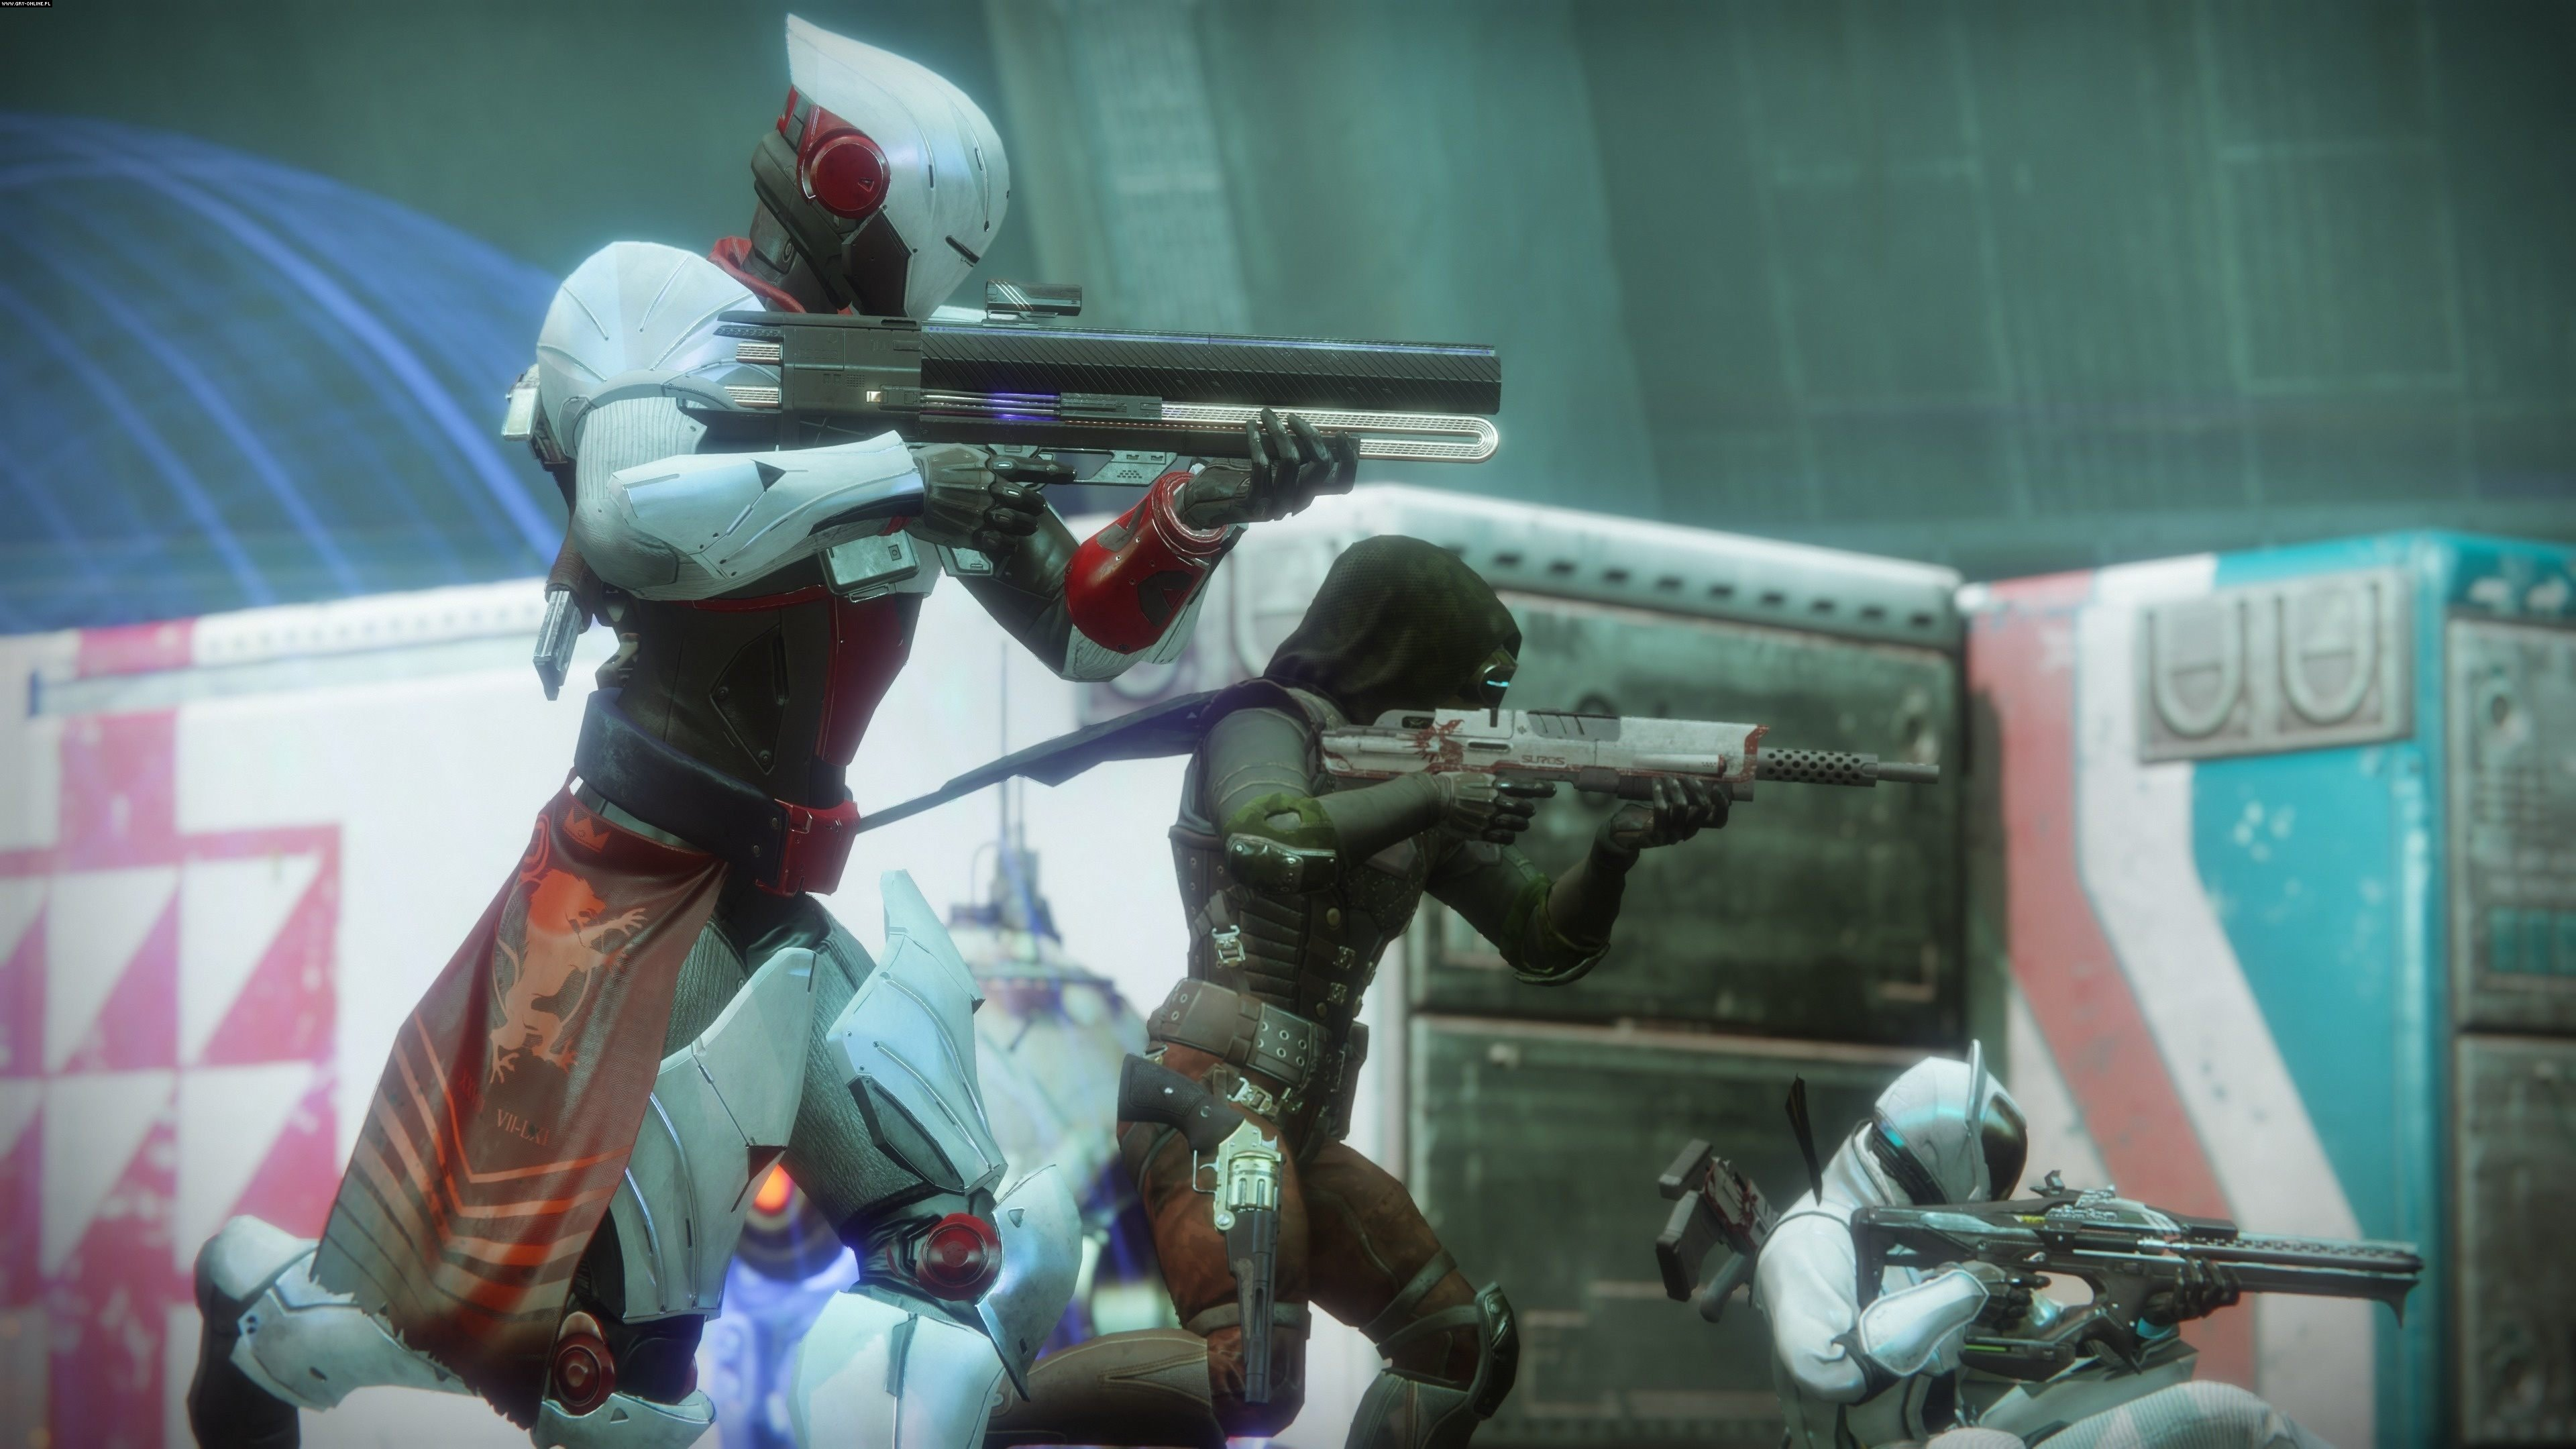 Destiny 2 PC, PS4, XONE Games Image 4/241, Bungie Software, Activision Blizzard